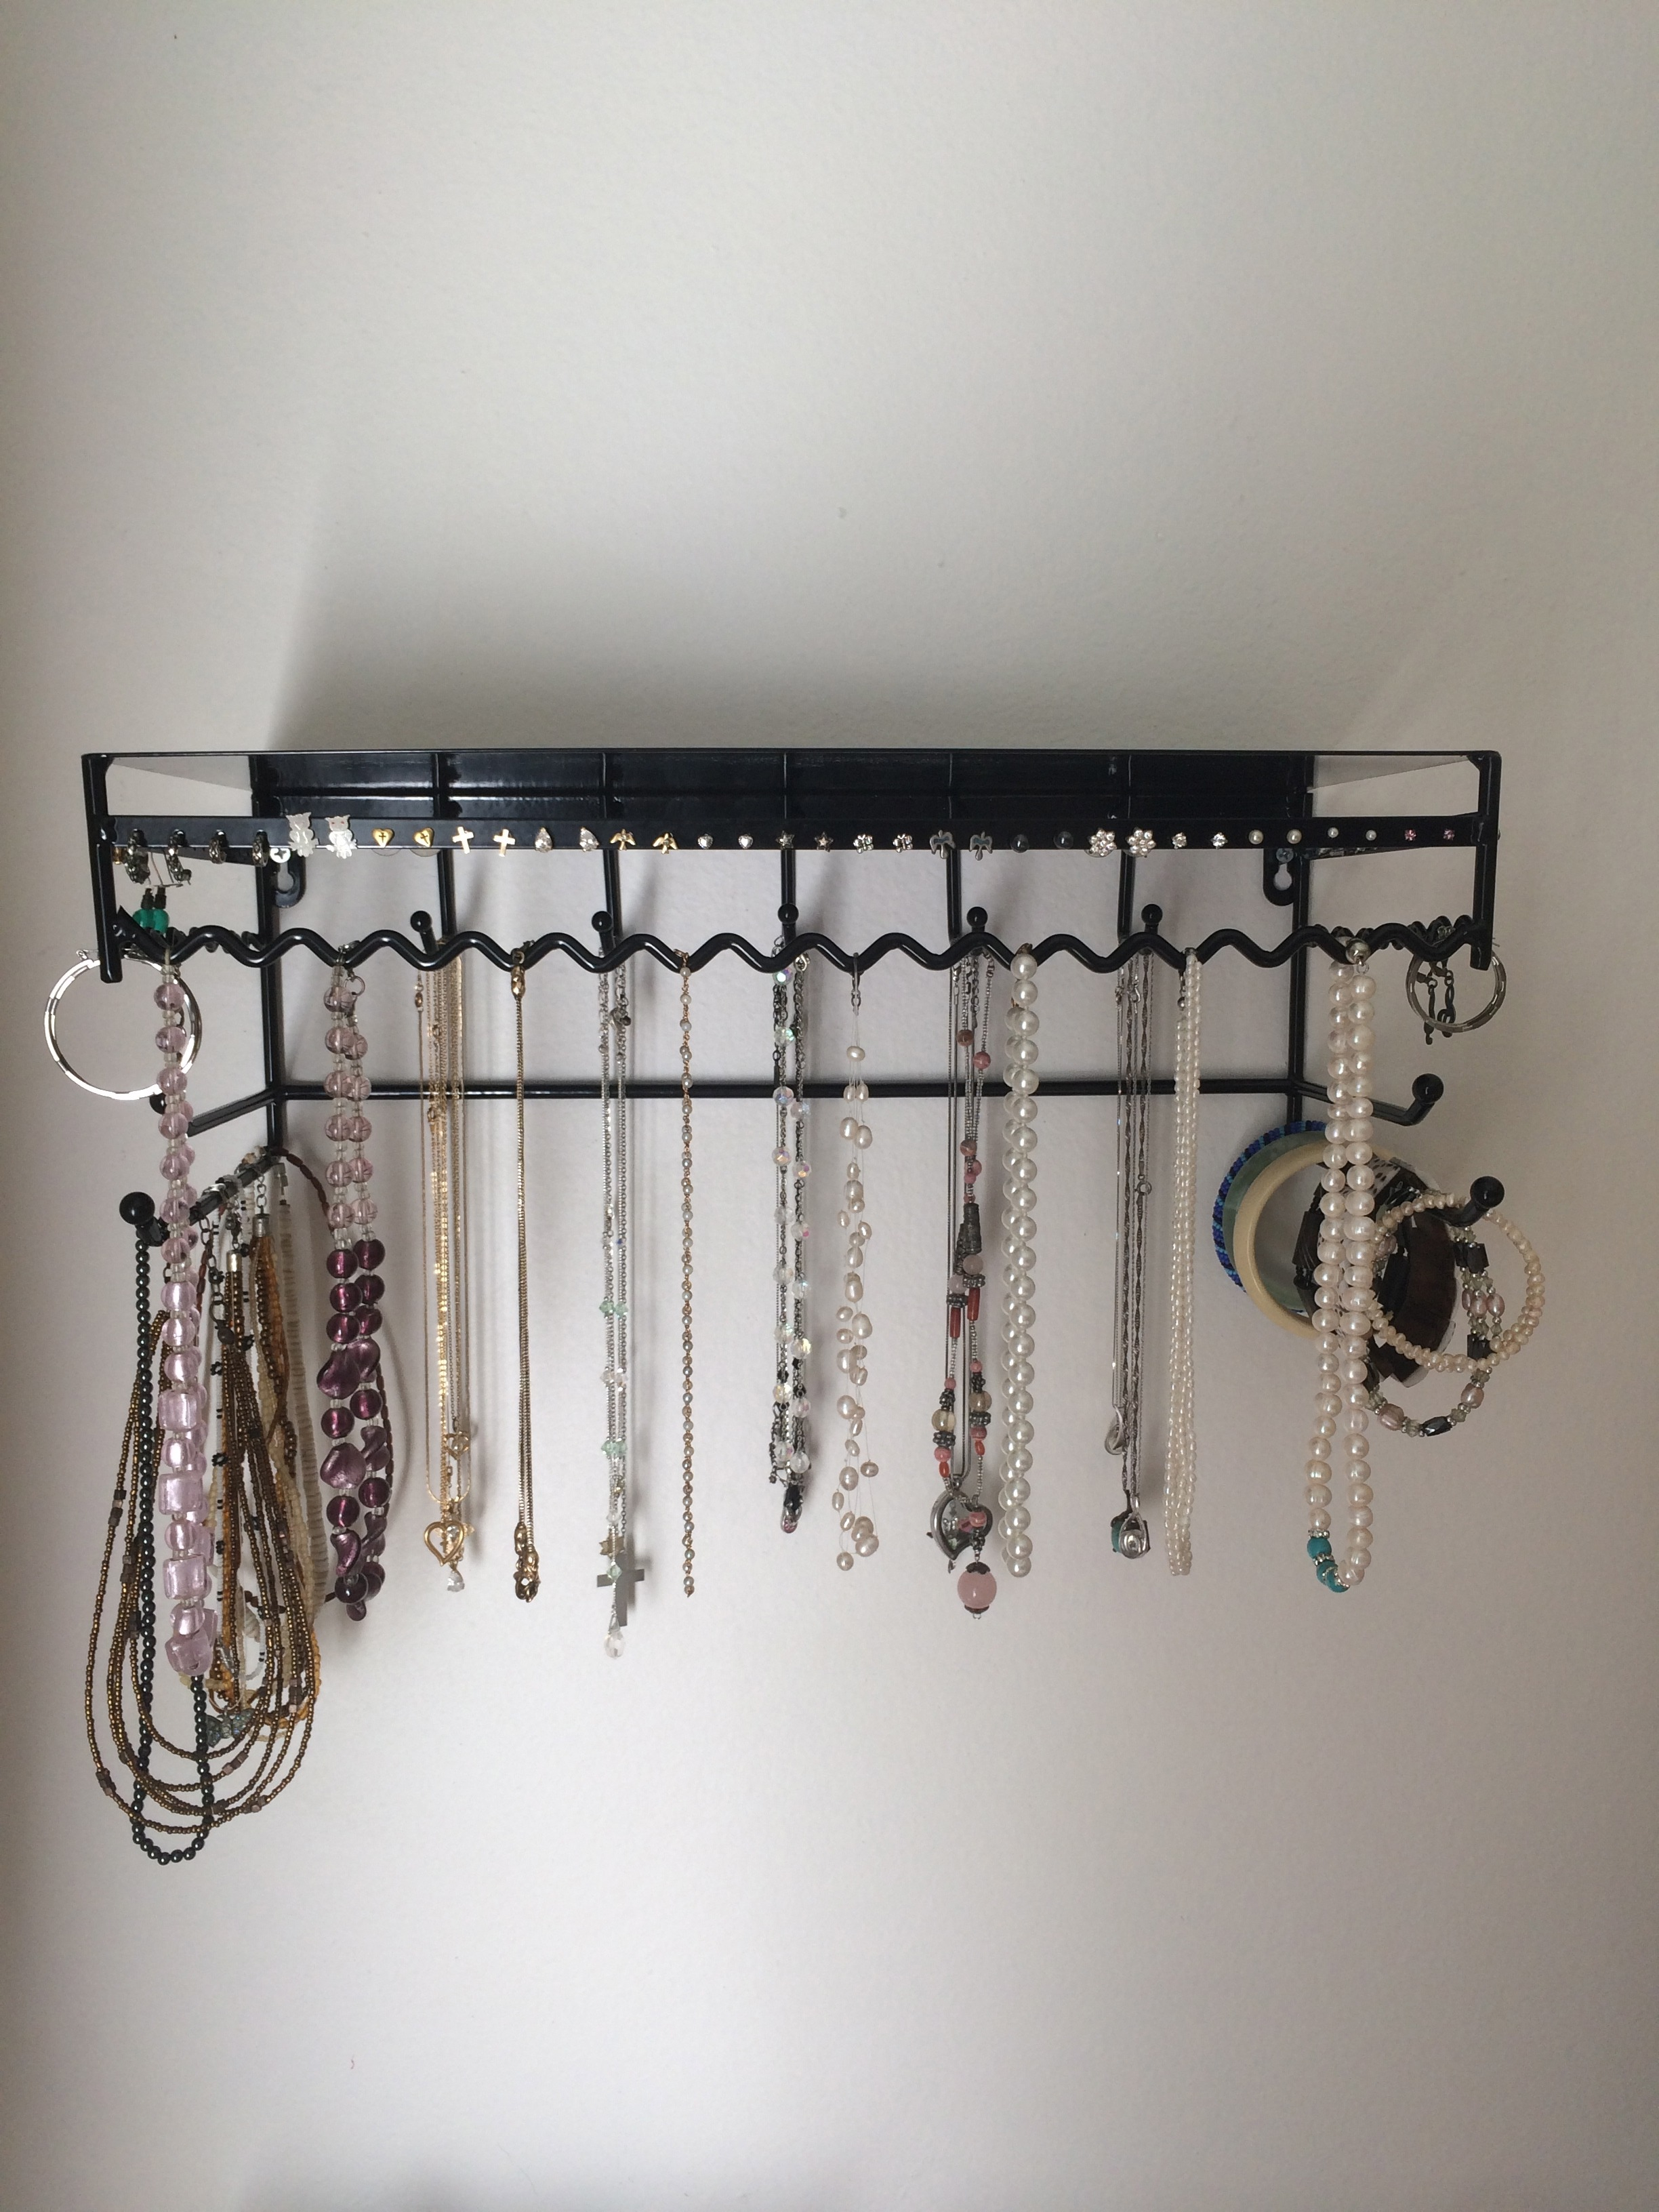 Wall Mount Jewelry Organizer // Product Review